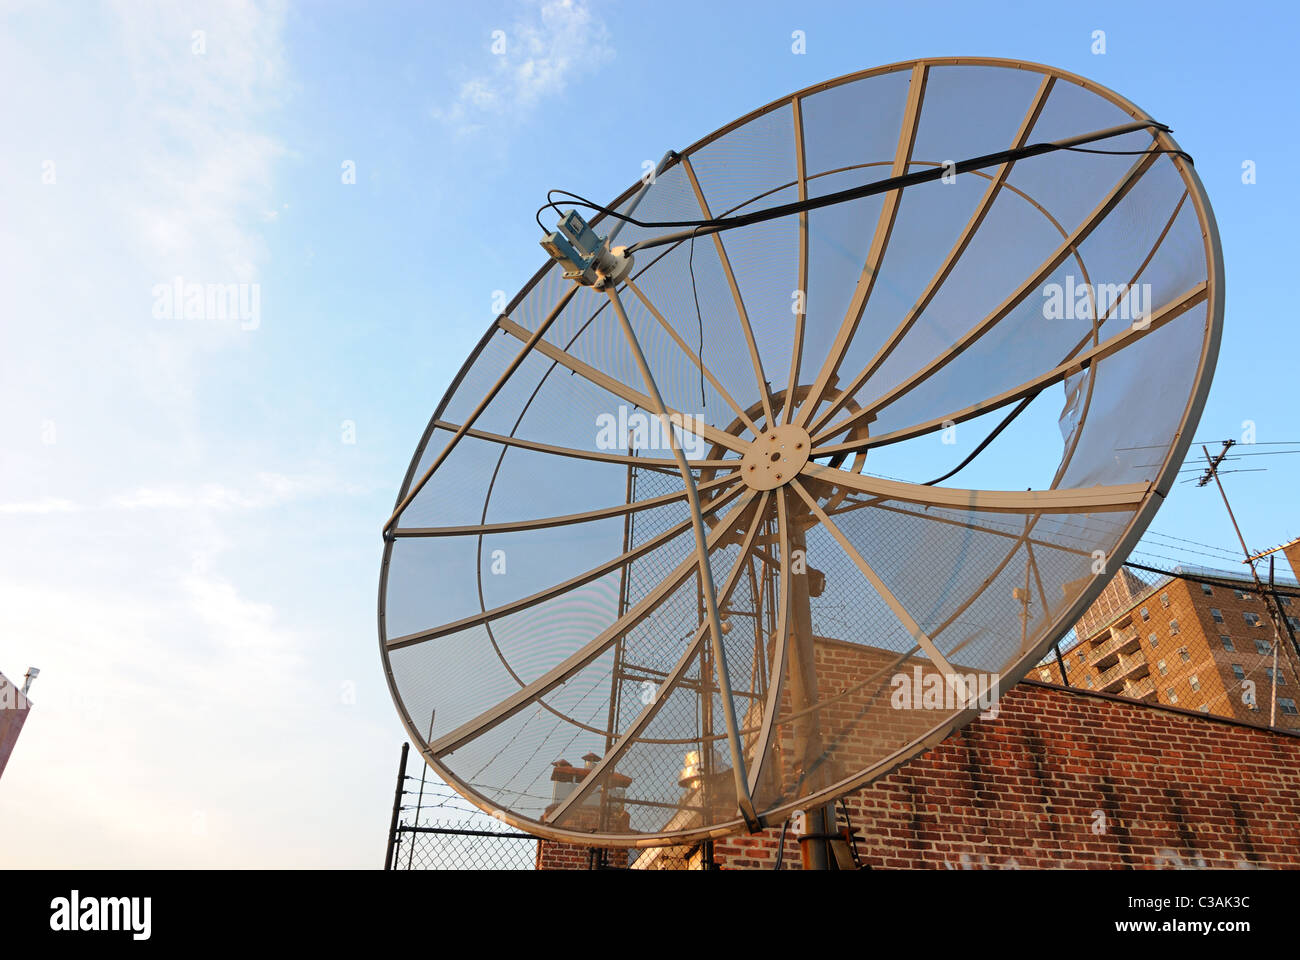 View from a rooftop in New York City with an old worn satellite dish receiver - Stock Image